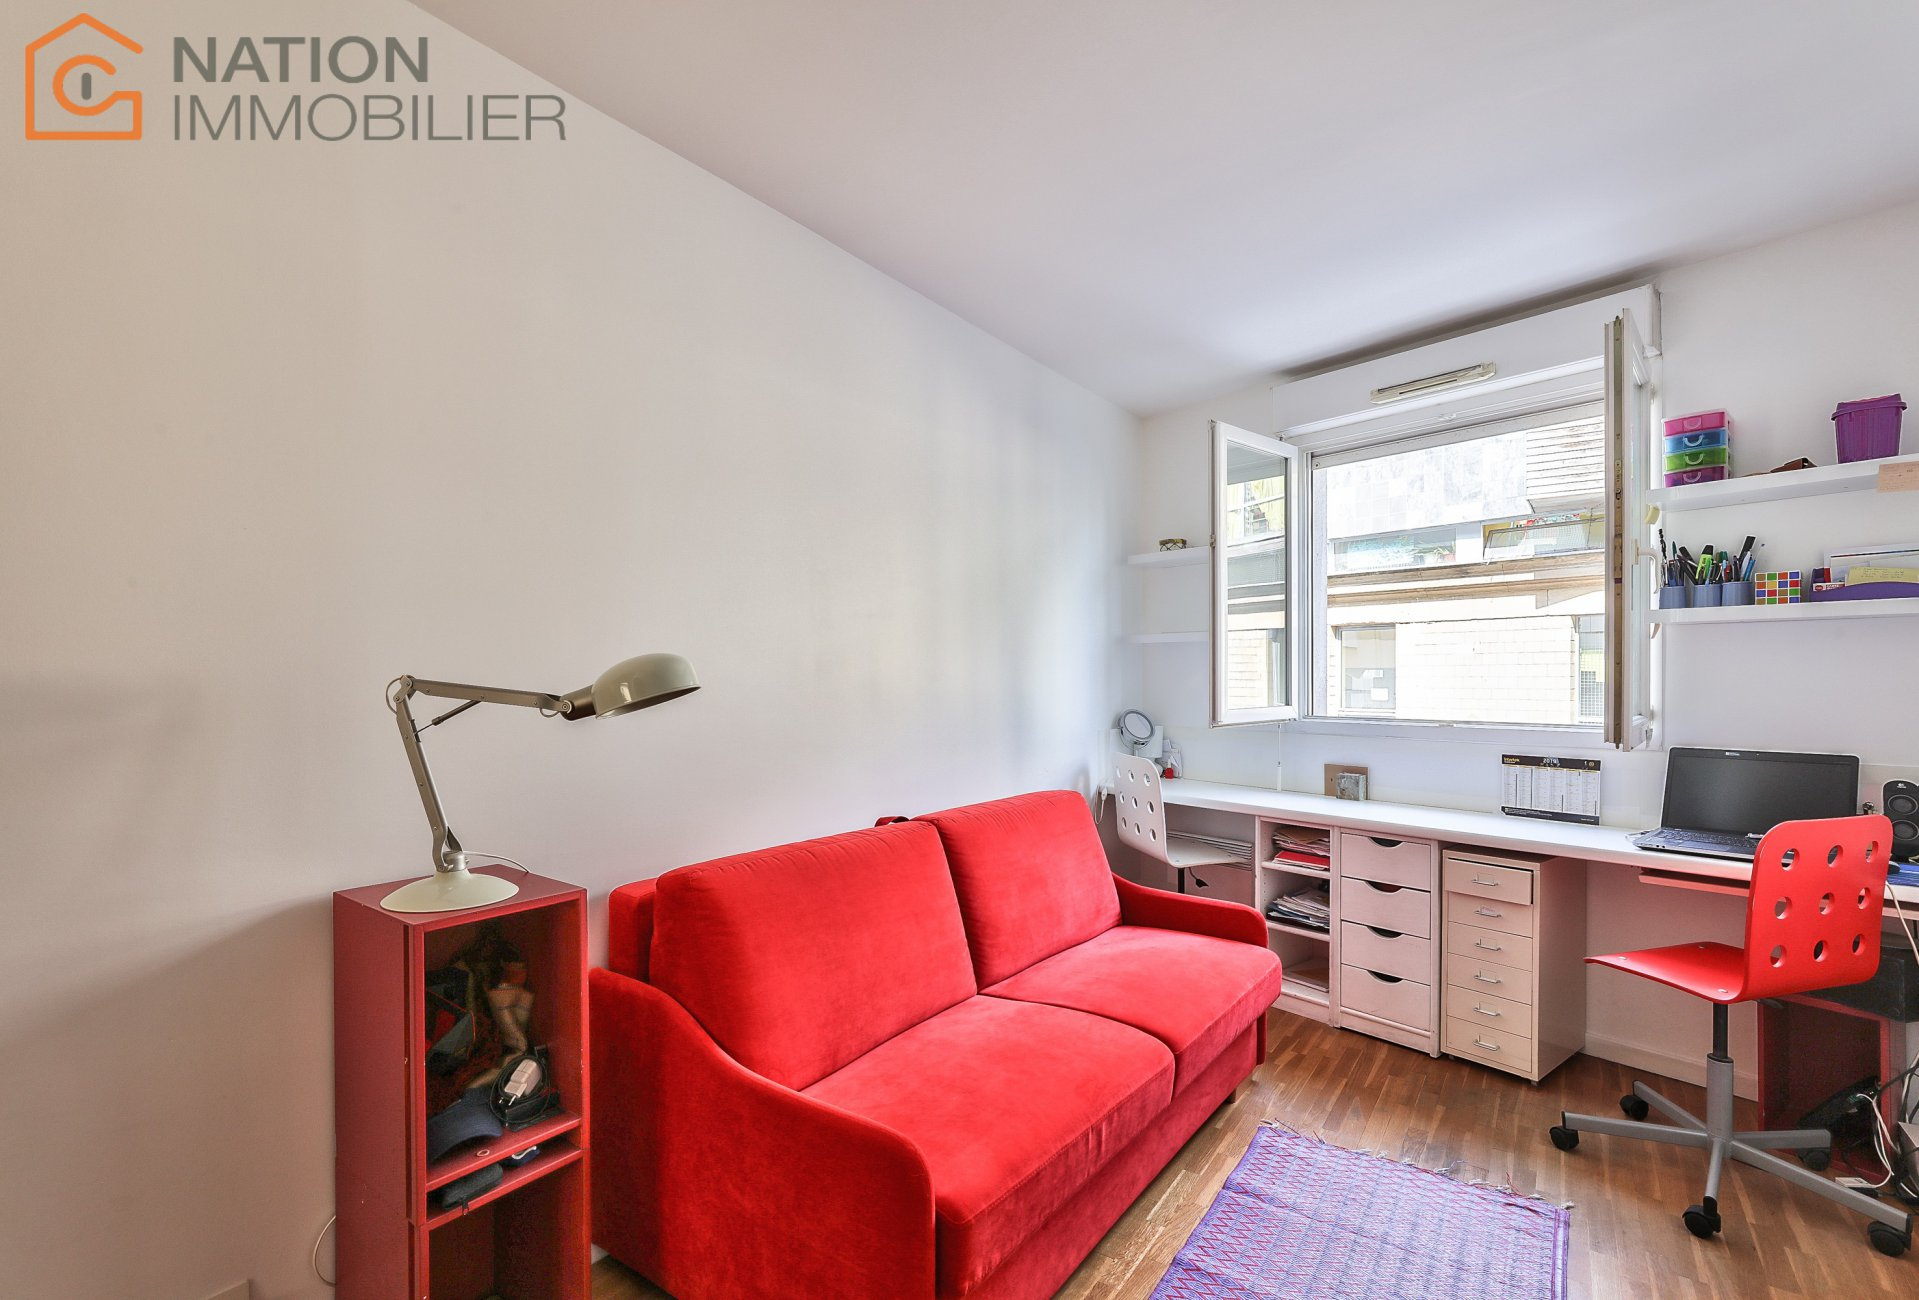 Sale Apartment - Paris 20th (Paris 20ème)